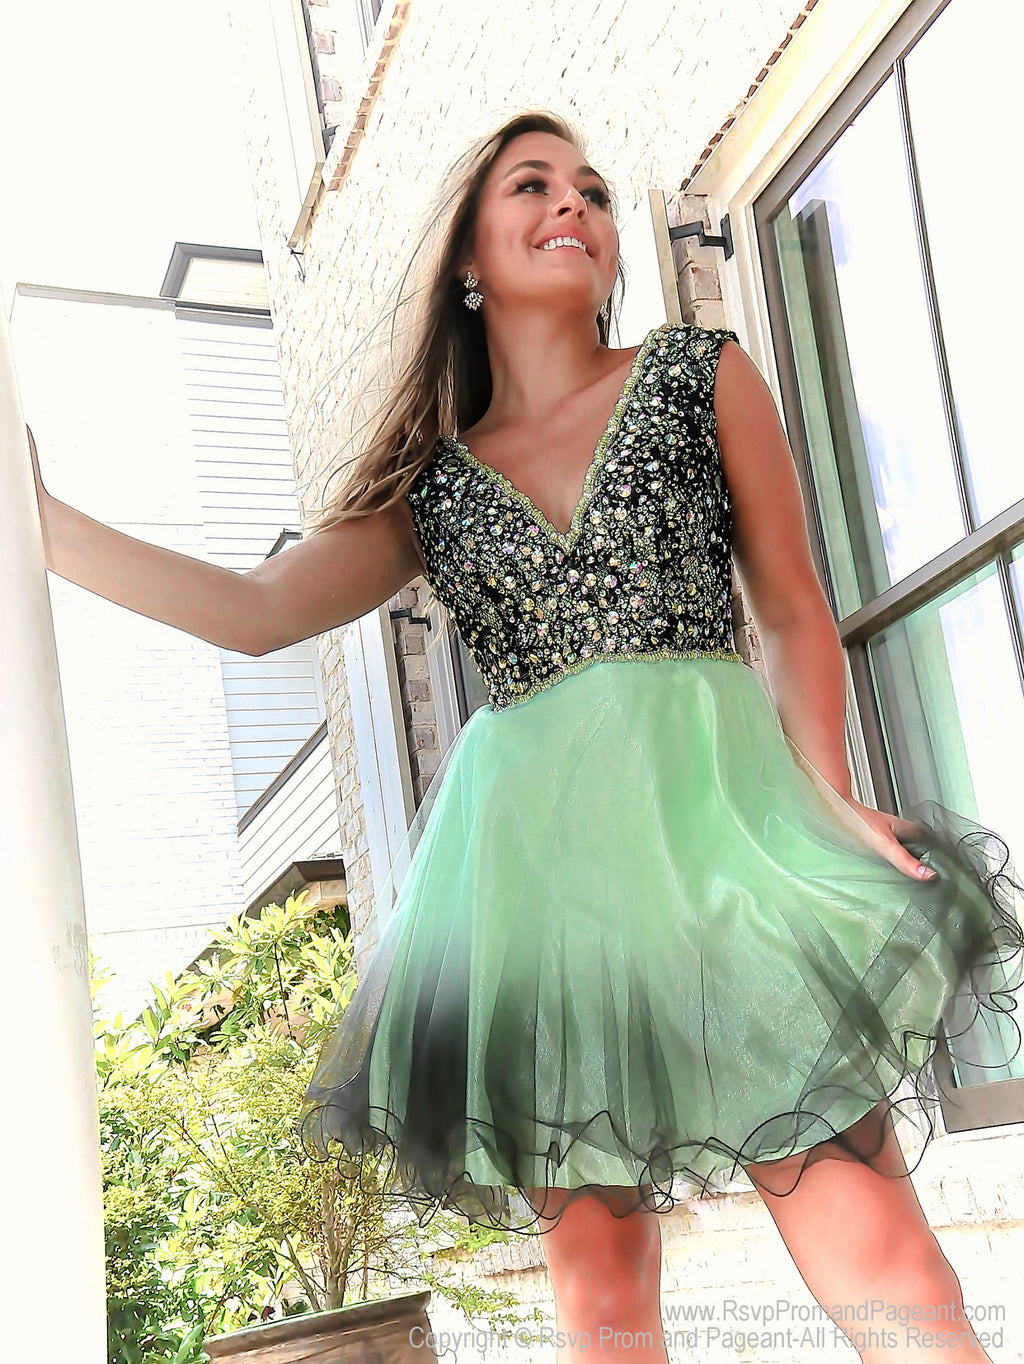 Model in Exclusive Ombre Mint into Black Short Dress with Irisdescent Bodice at Rsvp Prom and Pageant which is the largest prom brand locted in metro Atlanta, Georgia